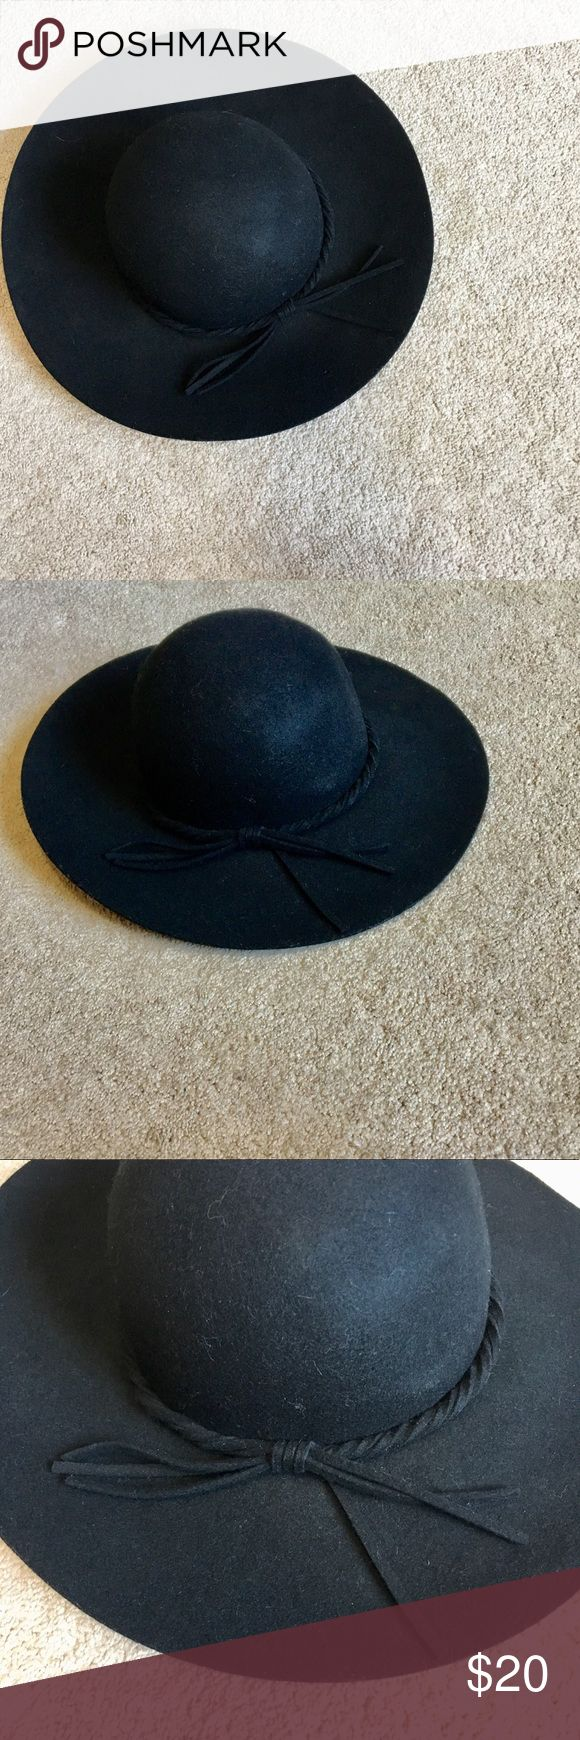 Large black floppy summer hat Large black floppy sun hat. Worn one time. Such a fun hat to wear either at the beach or with a fun maxi dress. From target. Accessories Hats